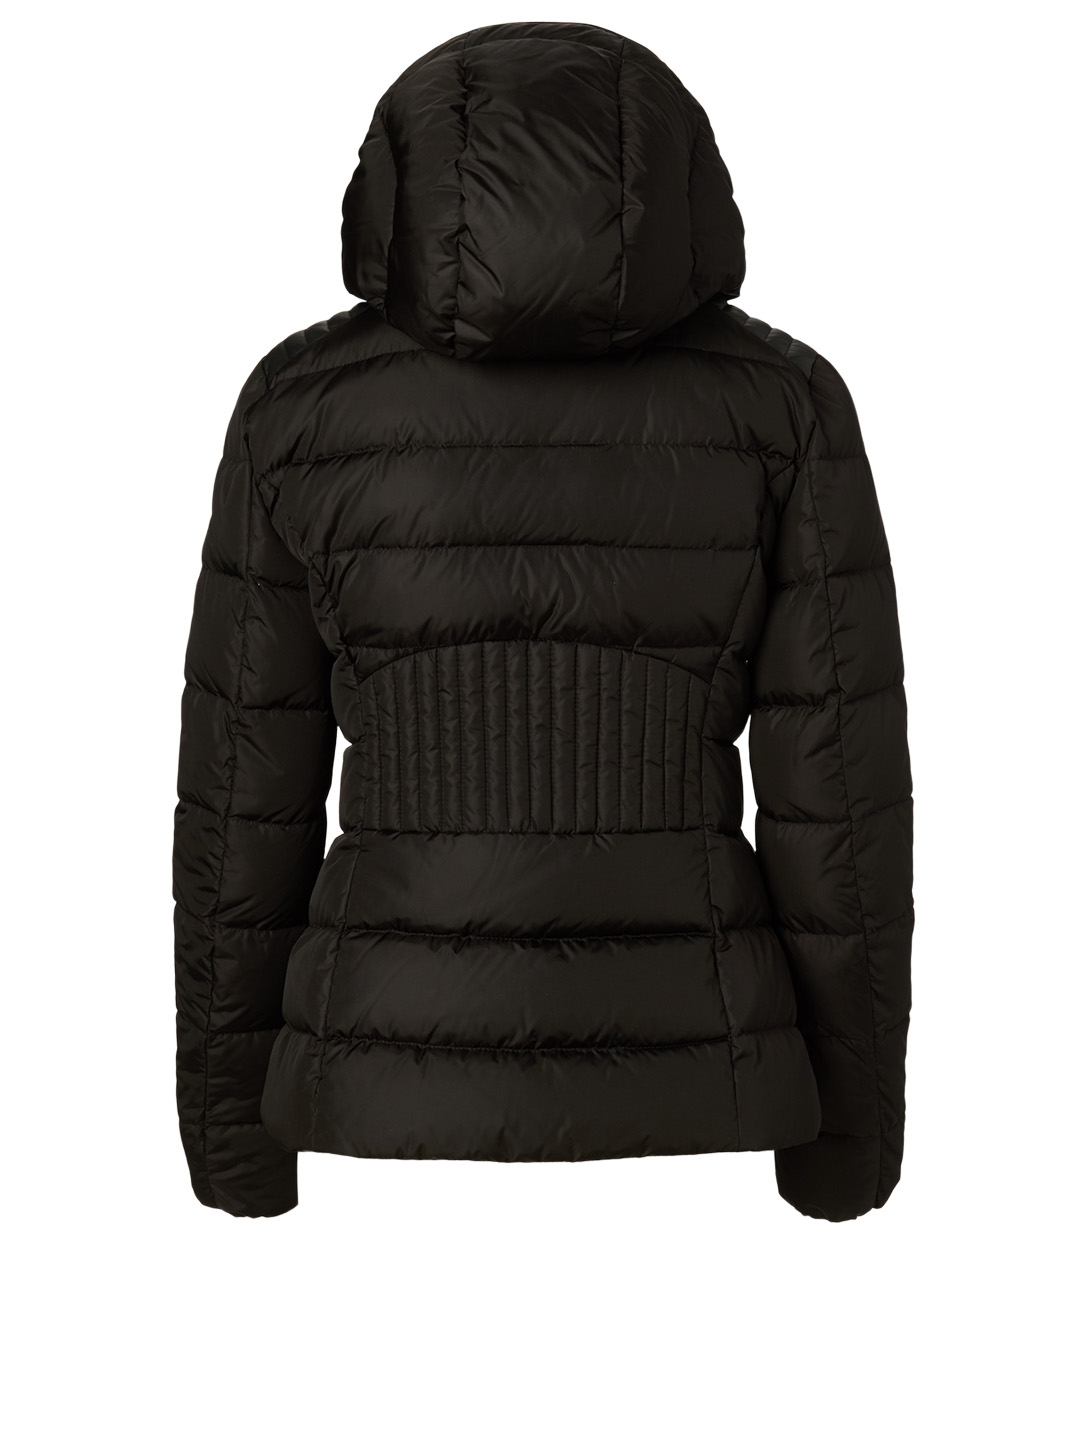 MONCLER Tetra Down Jacket With Hood Tetra Down Jacket With Hood Black